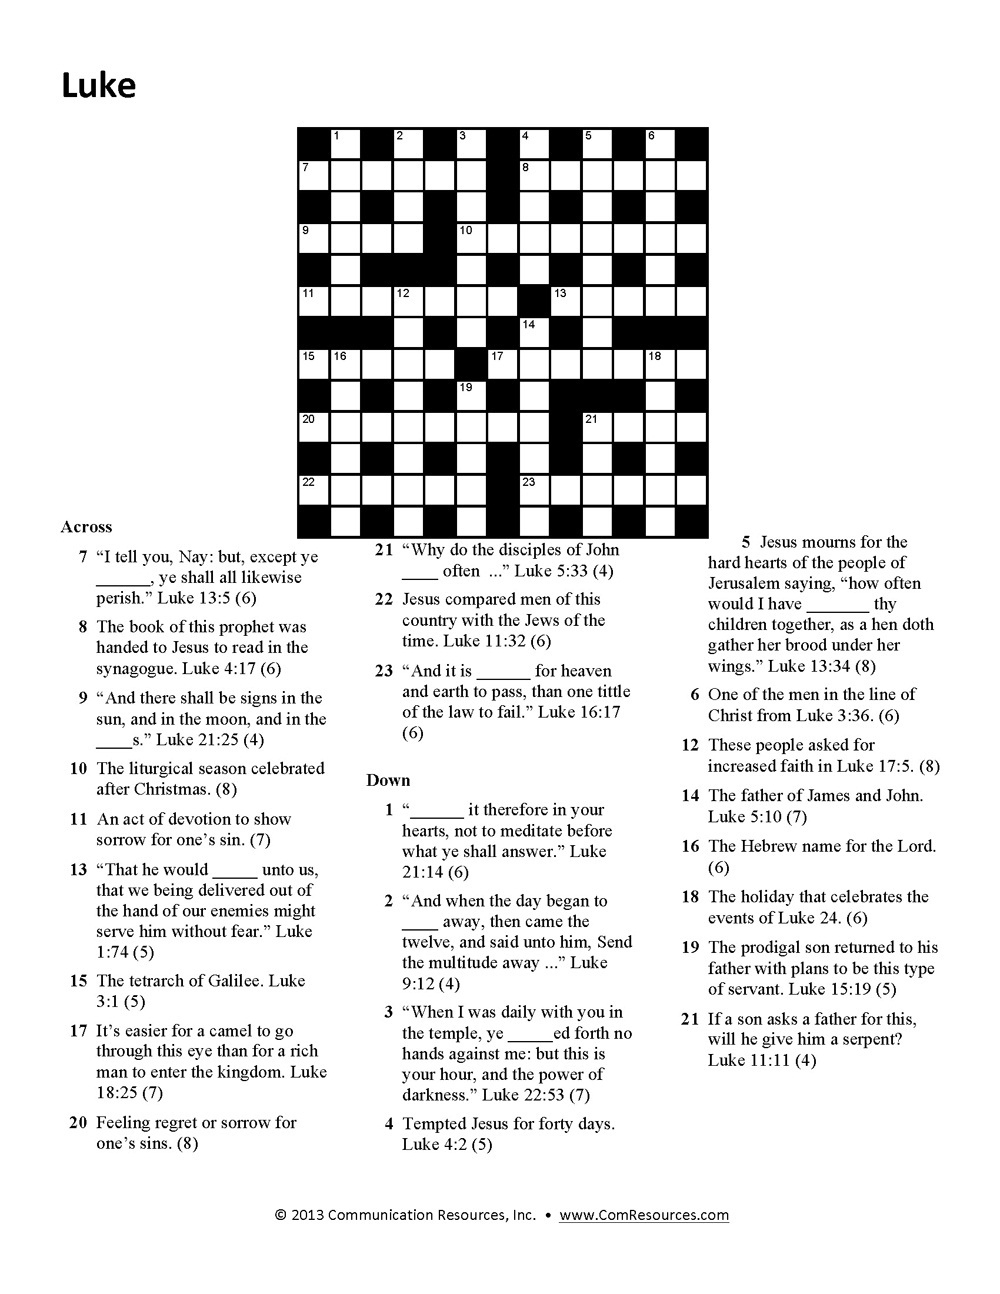 15 Fun Bible Crossword Puzzles | Kittybabylove - Printable Crossword Puzzles Uk